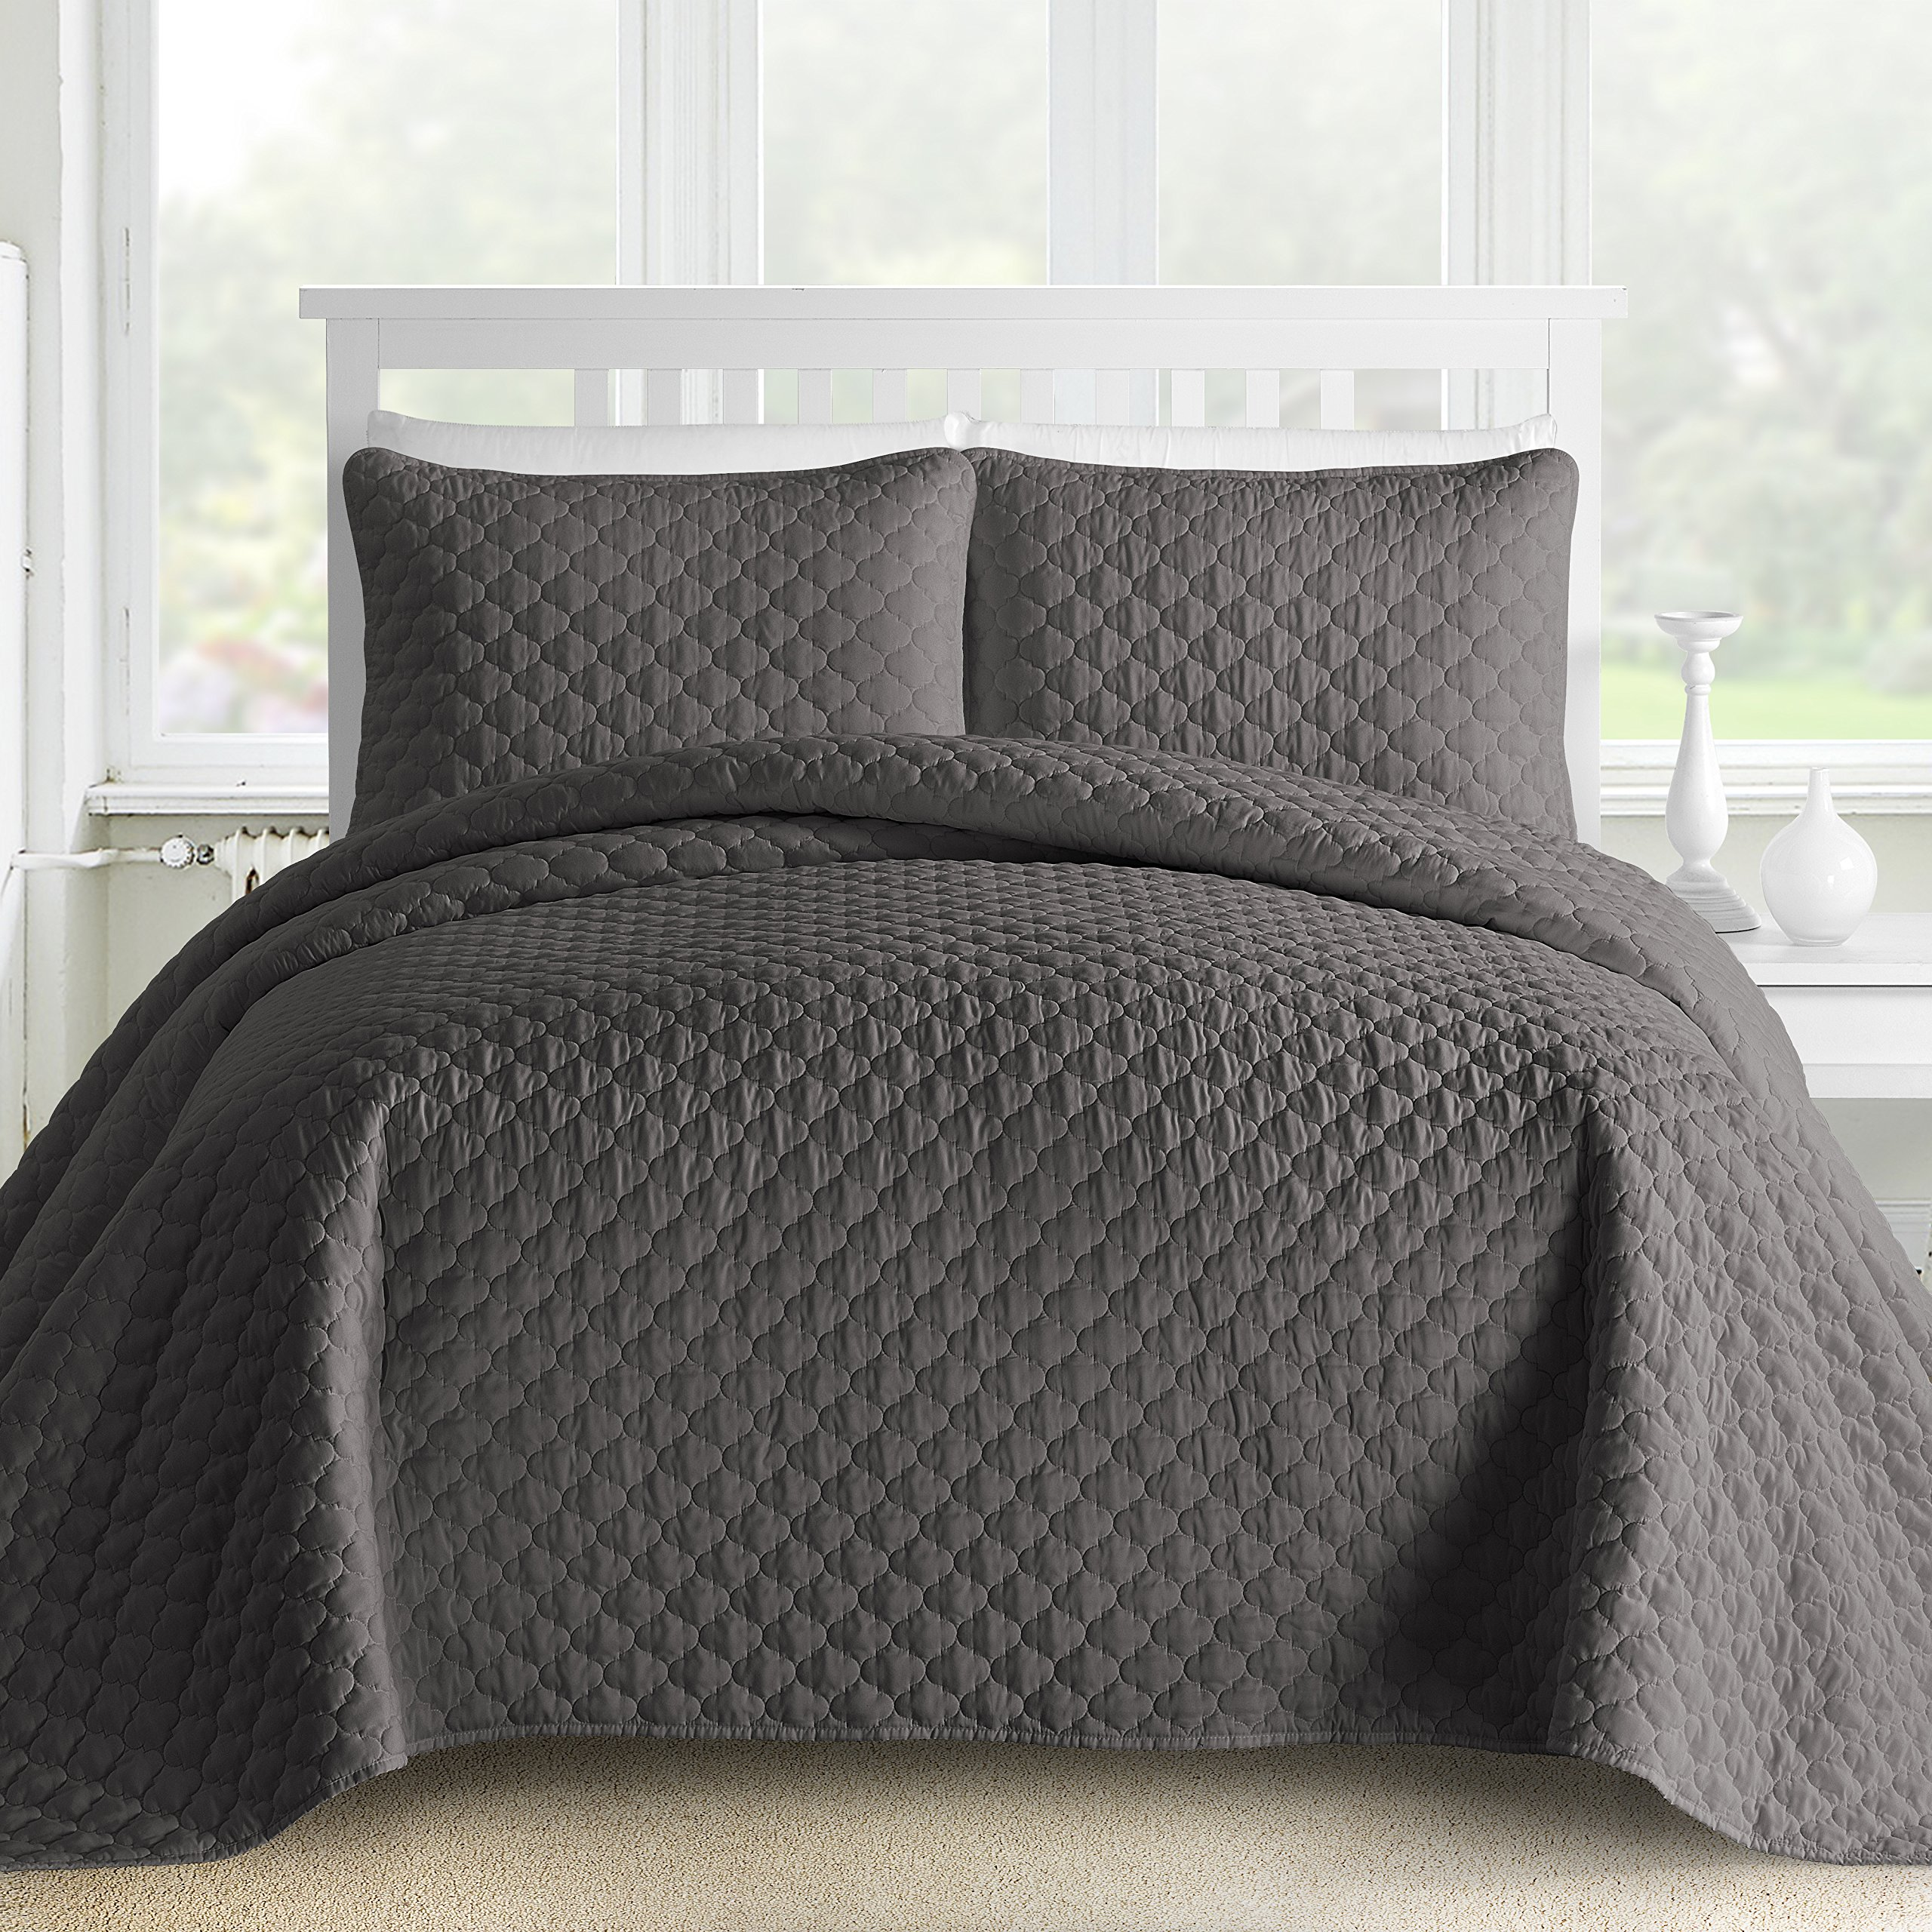 Get Quotations Comfy Bedding Oversized And Prewashed Lantern Ogee Quilted 3 Piece Bedspread Coverlet Set King